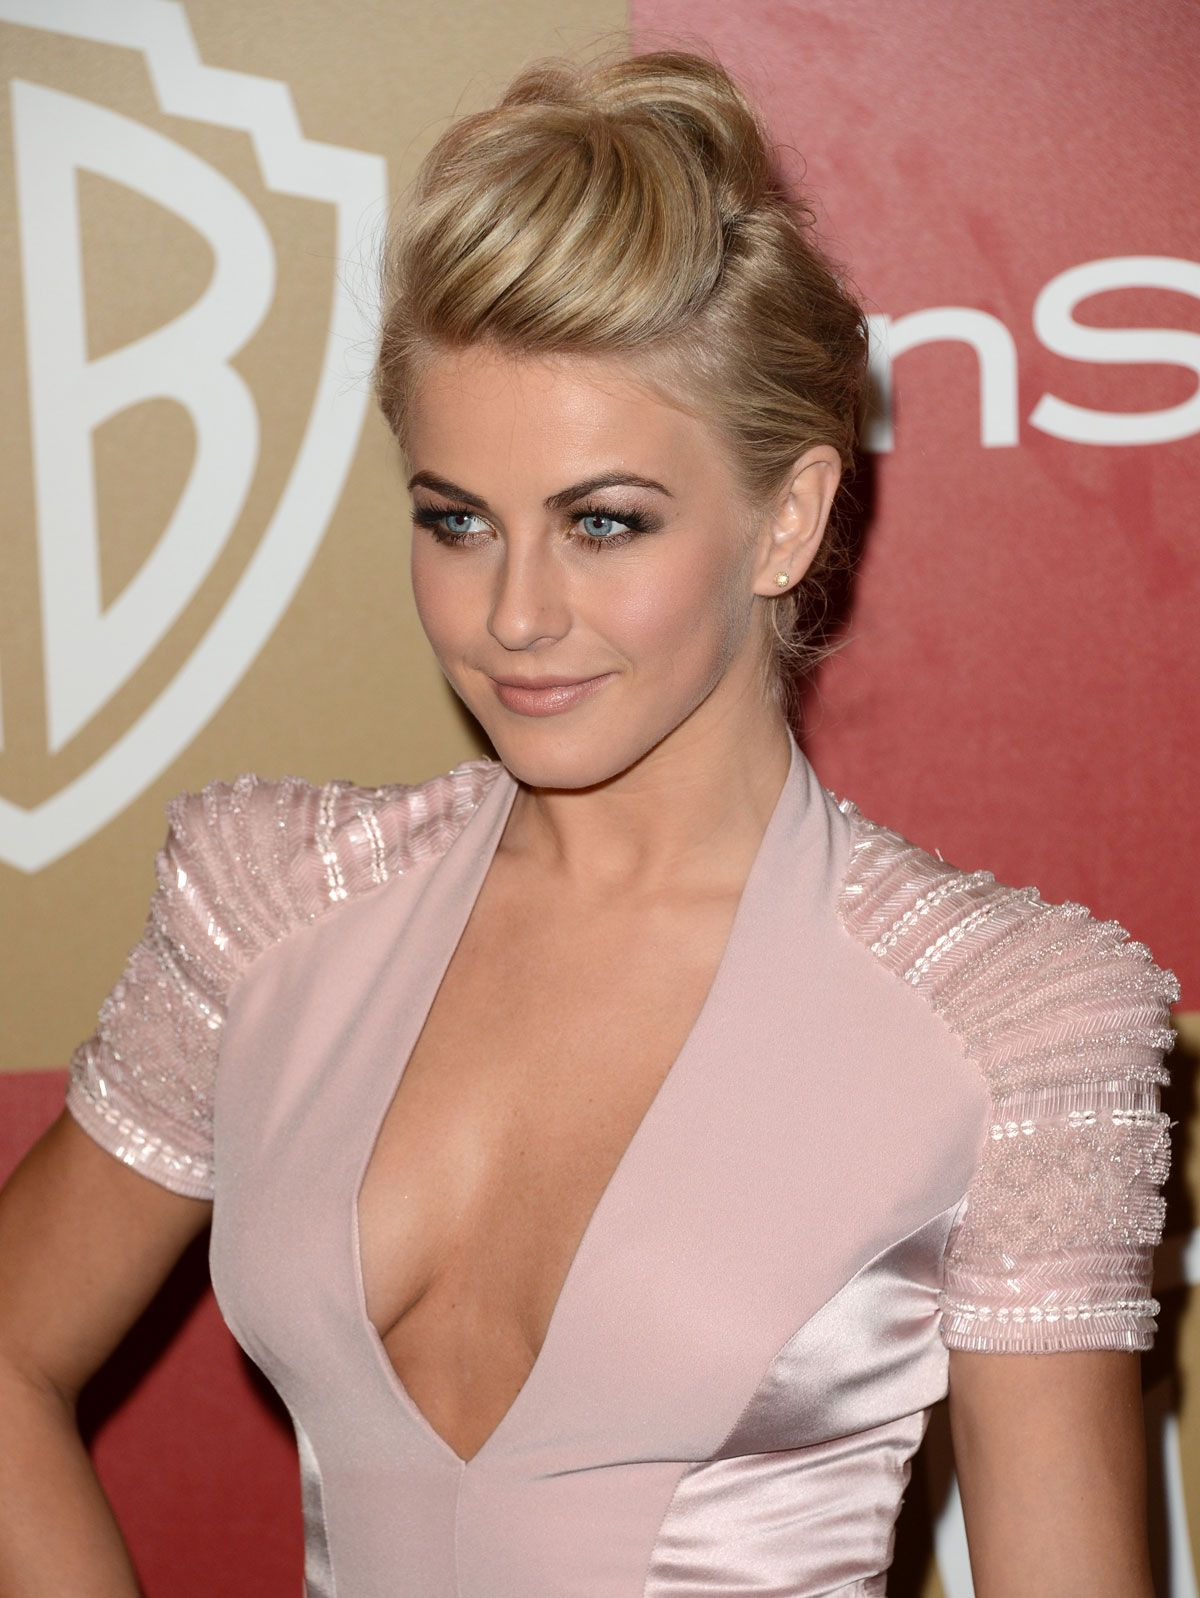 Julianne alexandra hough is an american dancer singersongwriter